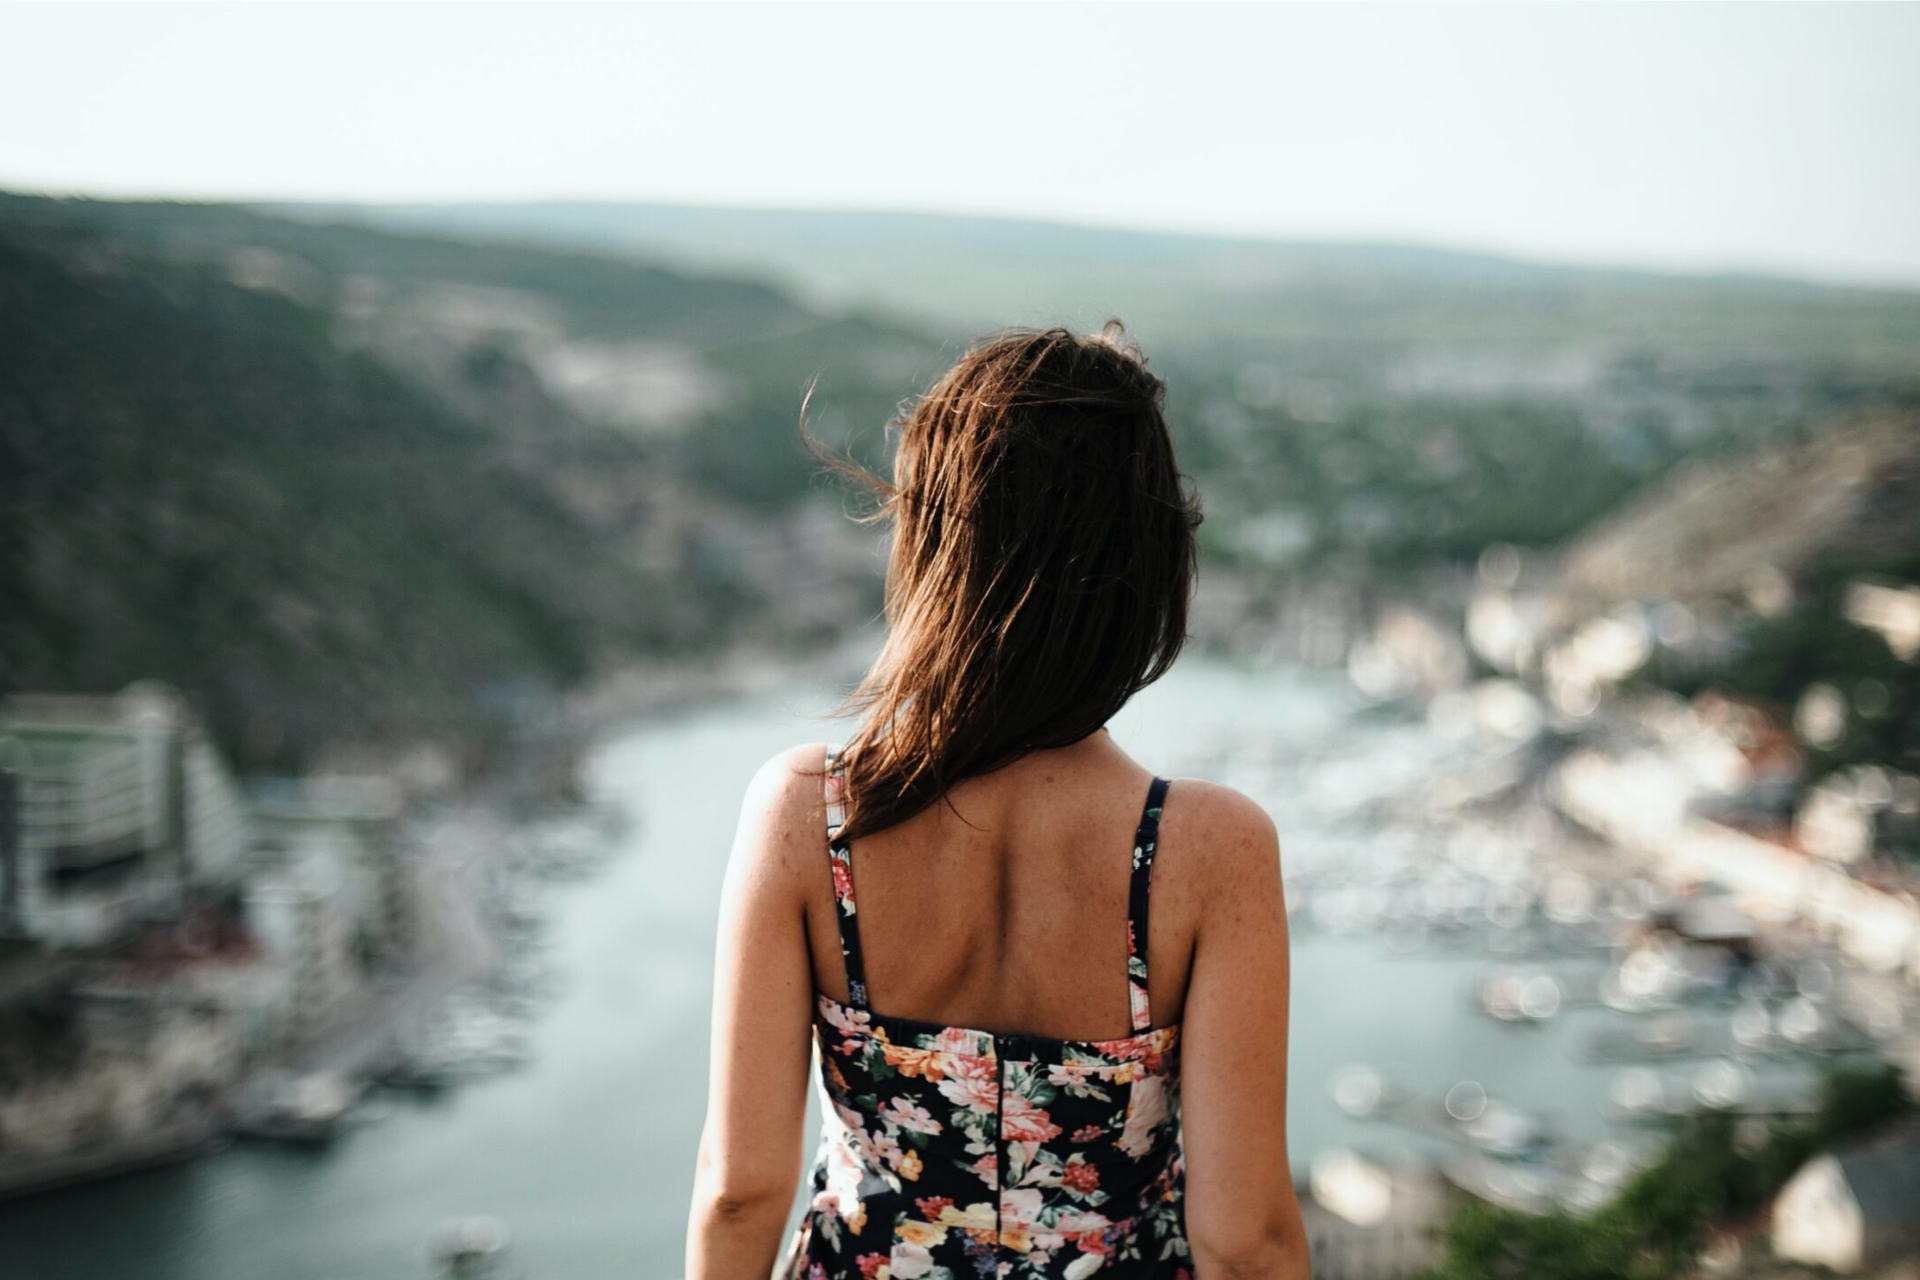 A back of a lady wearing a dress in front of the sea and mountains